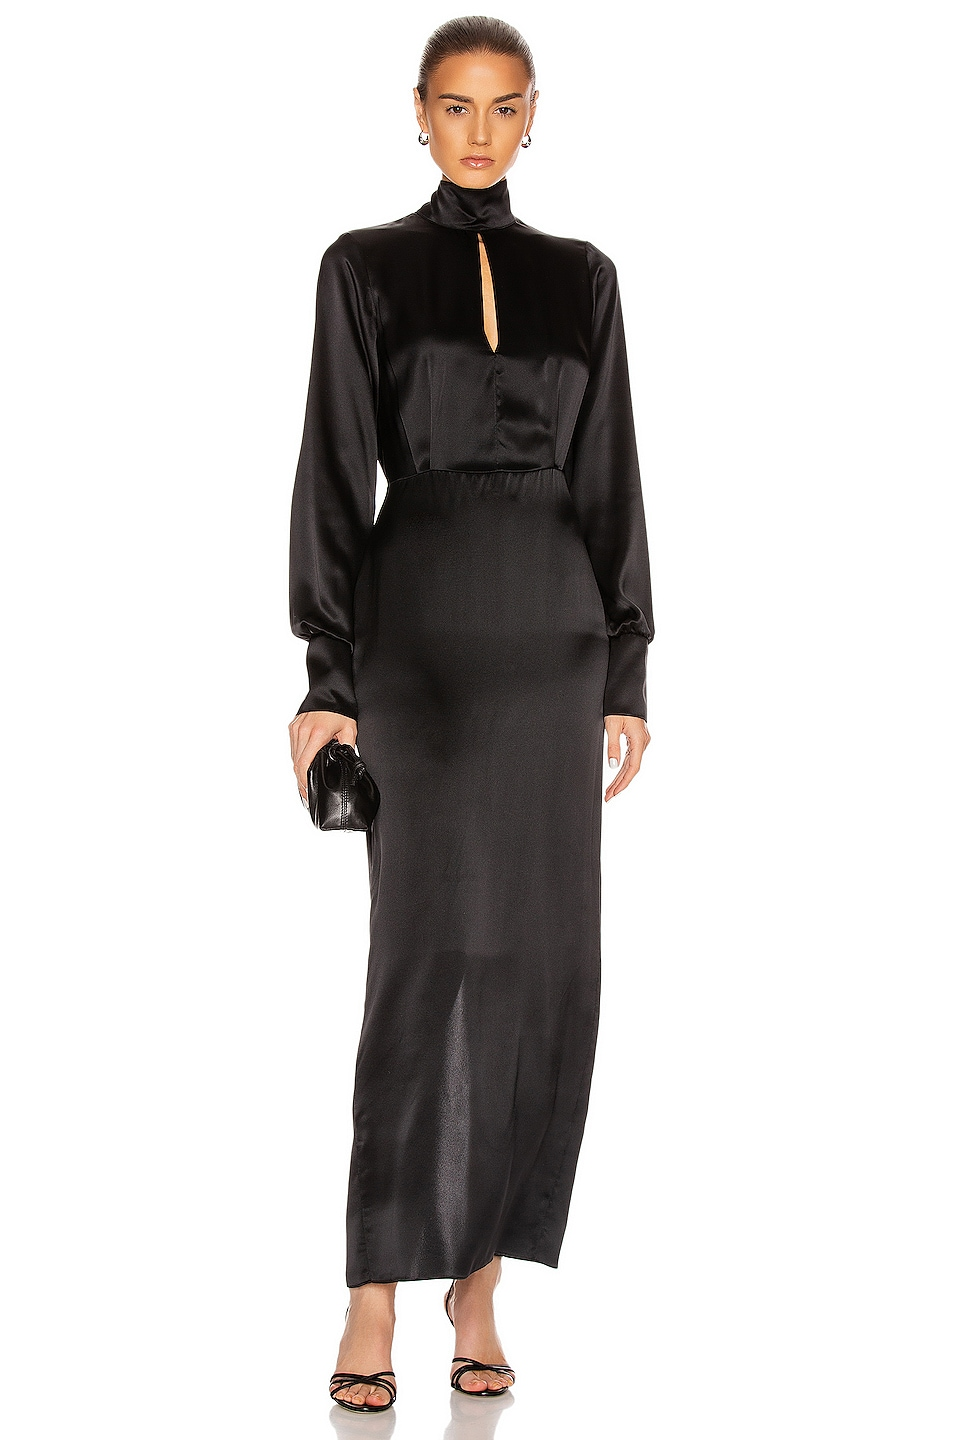 Image 1 of SABLYN Stephanie Dress in Black